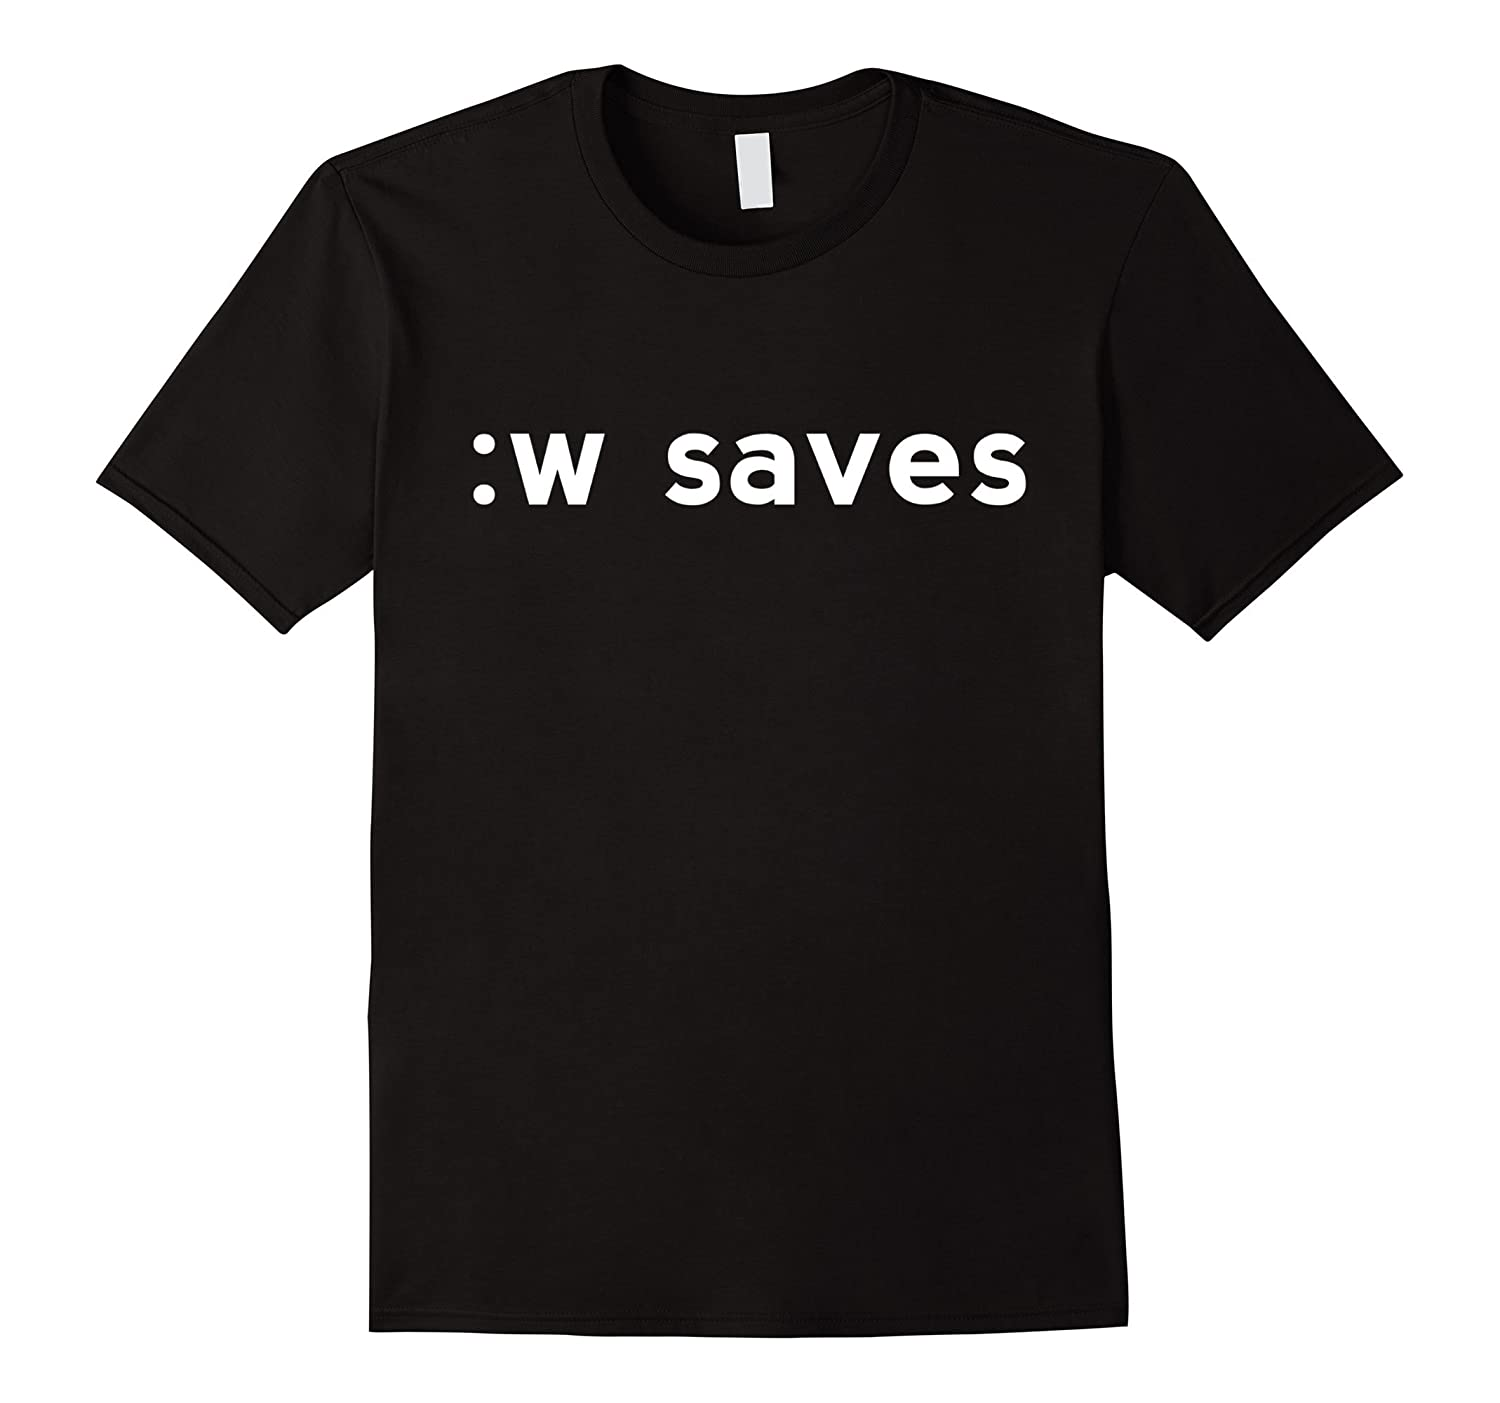 :w saves White Shirt for Users of the Text Editor Vi/Vim-Art